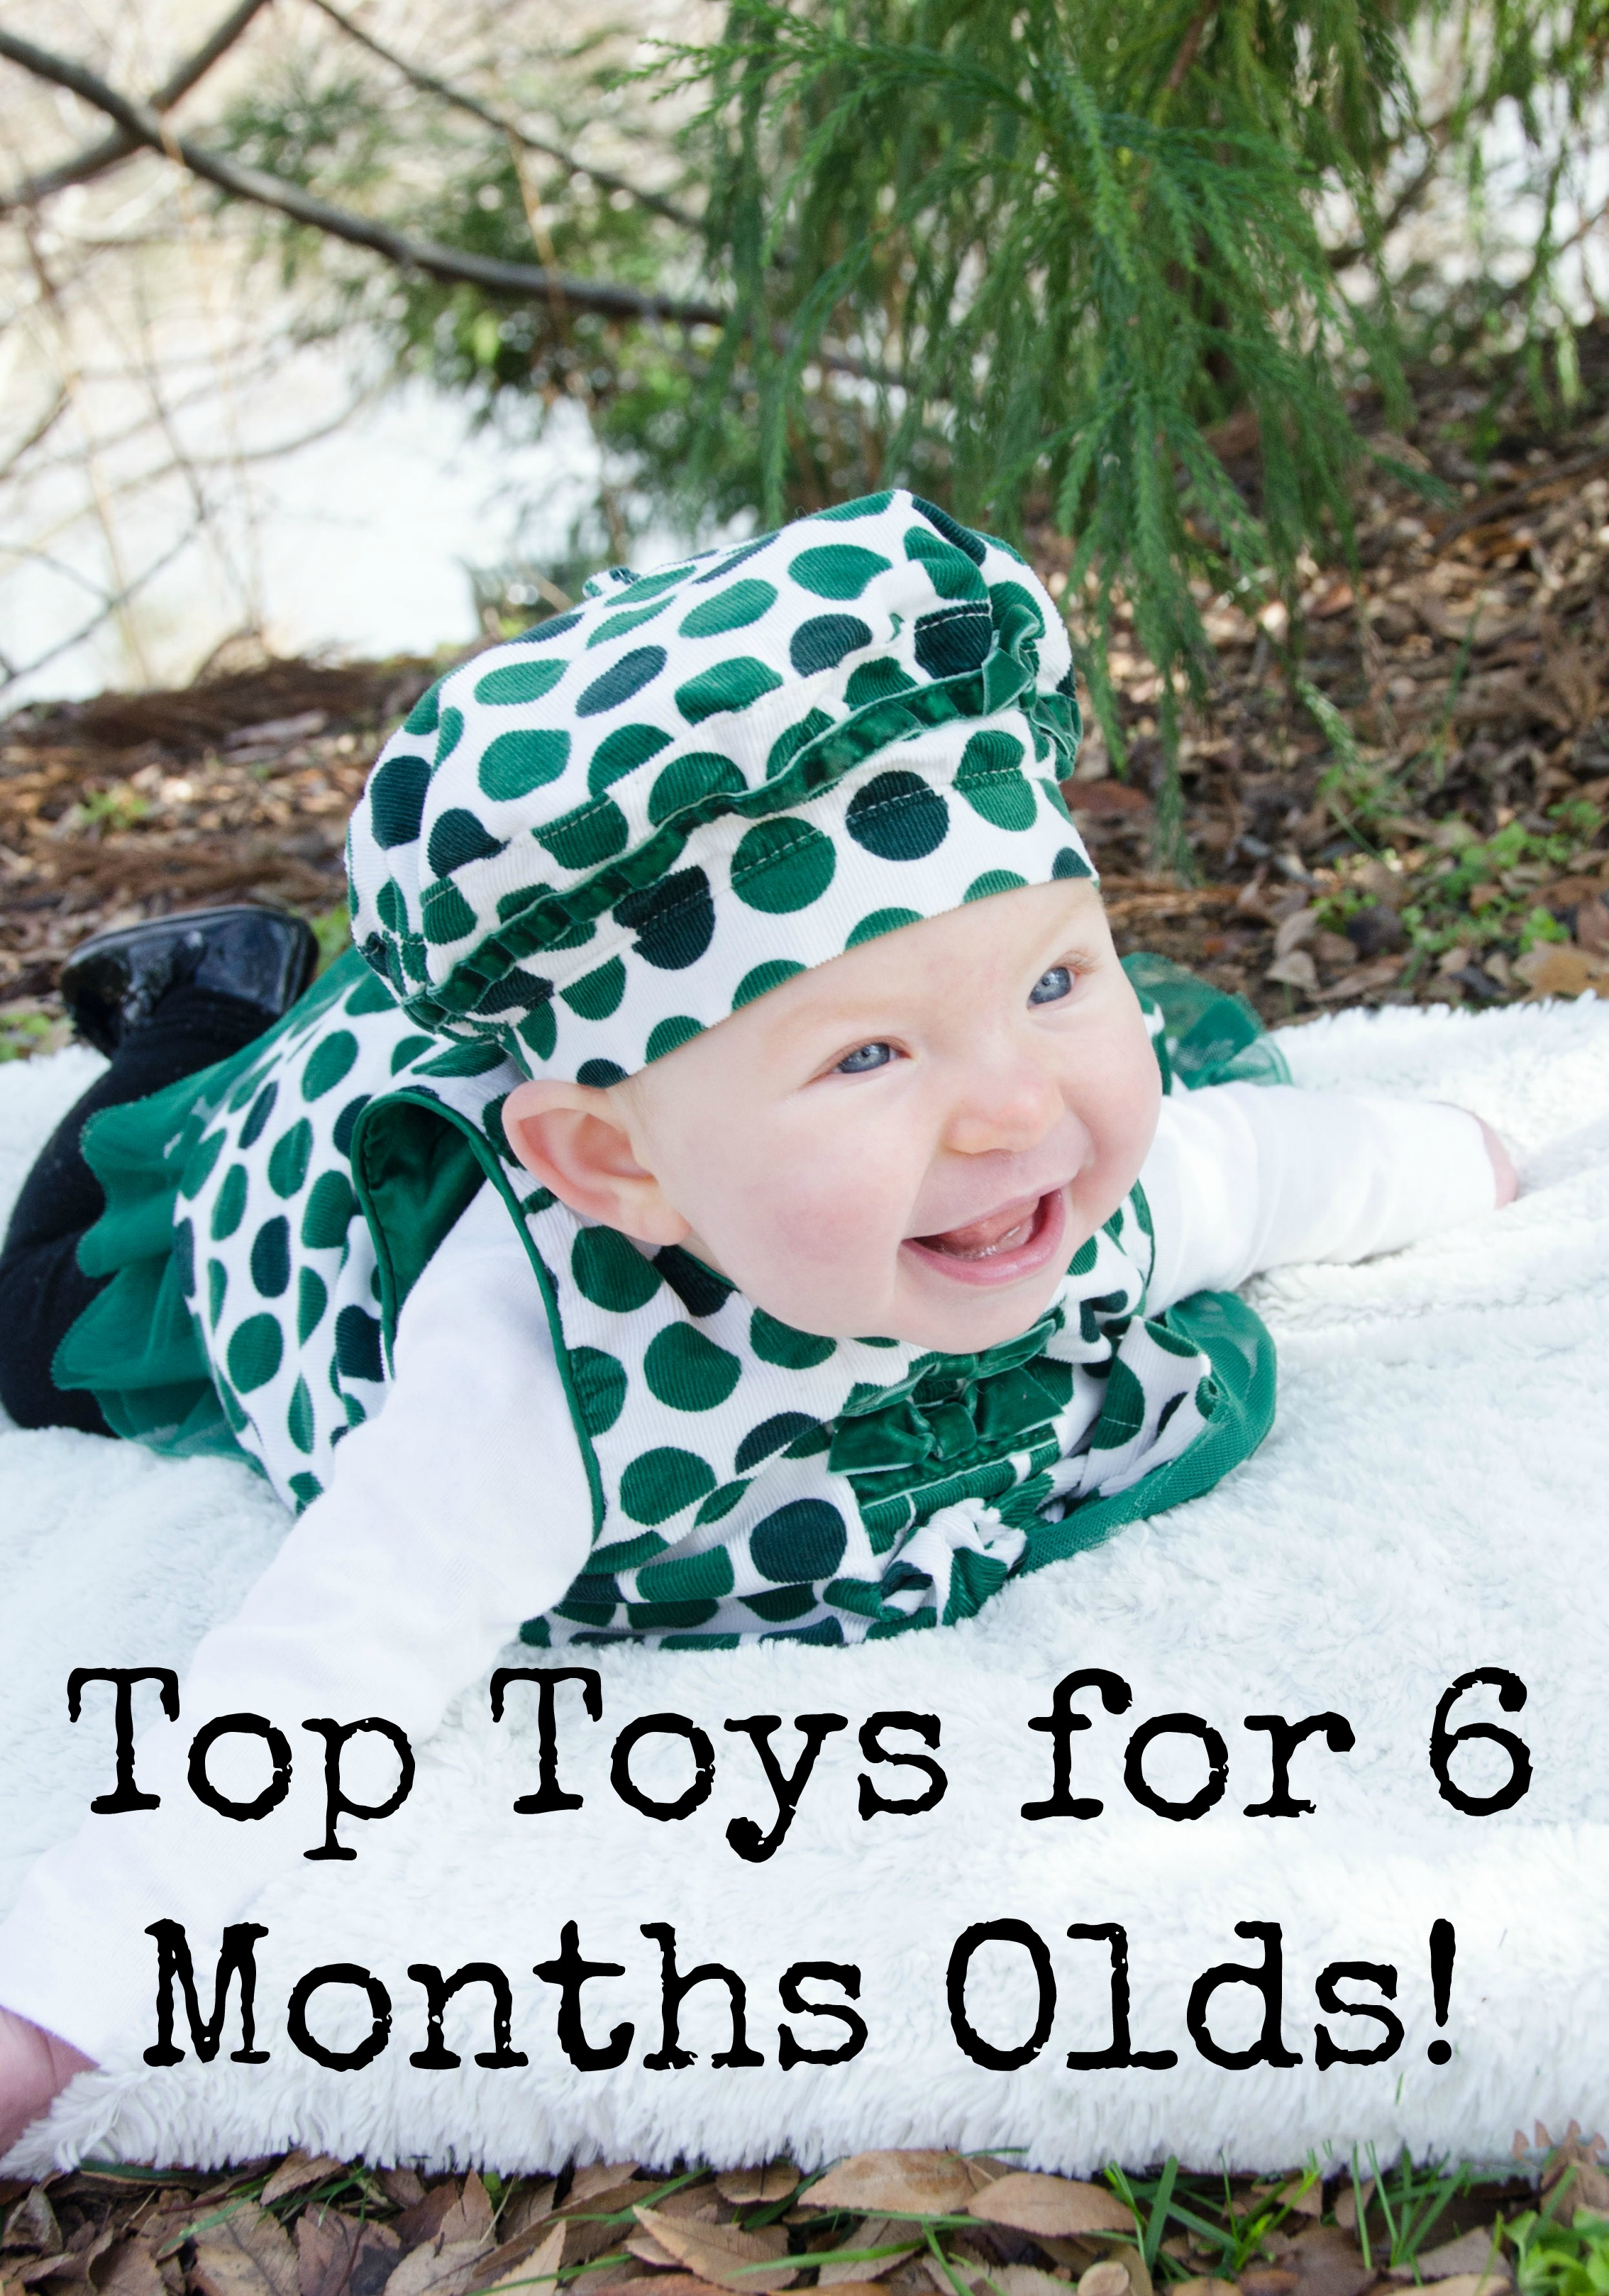 Top Toys For 6 Month Olds Grassfed Mama